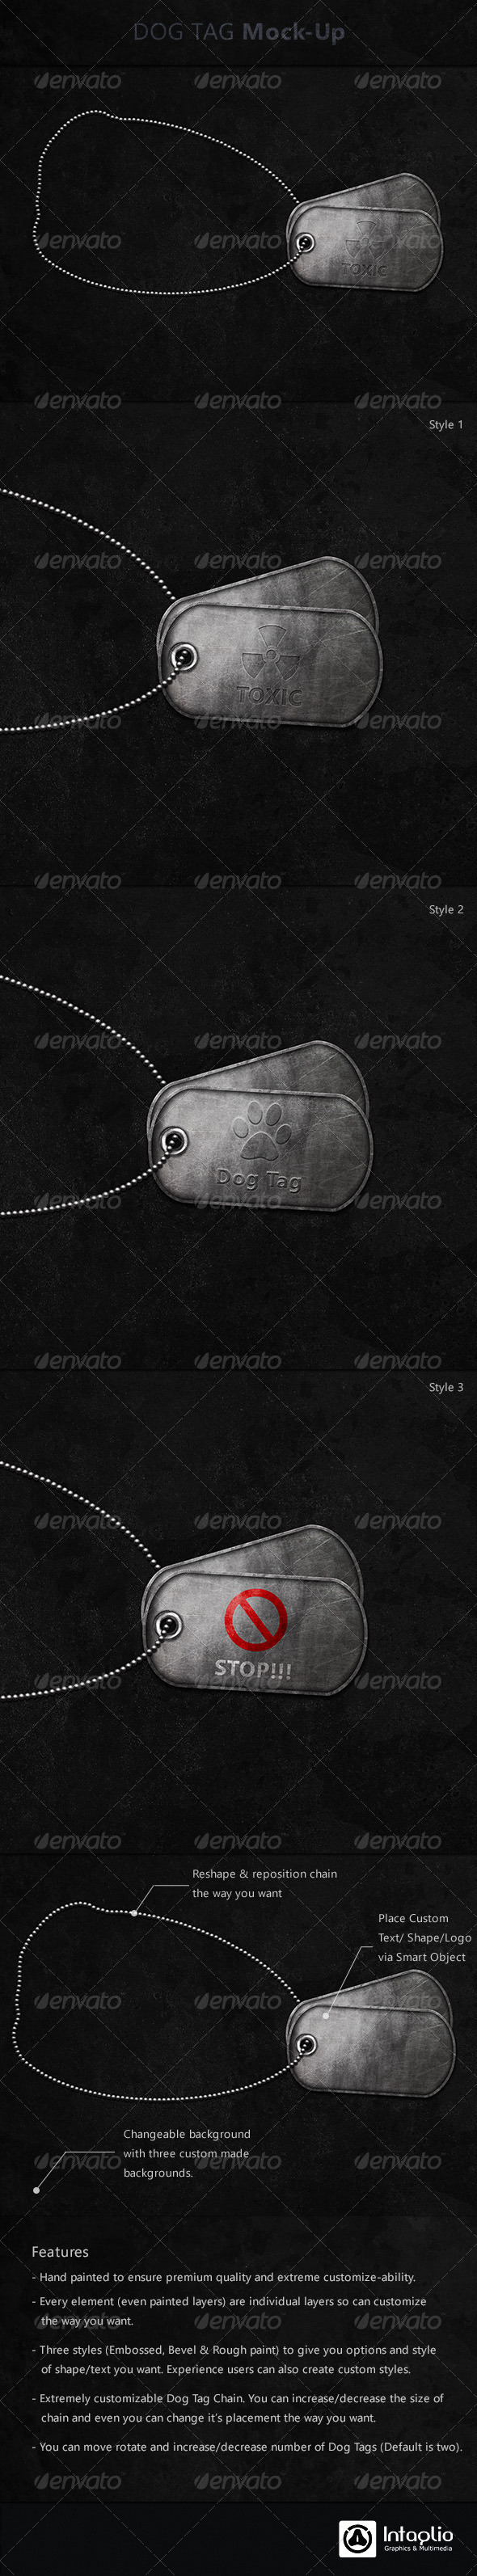 Dog Tag Mock-Up - Objects Illustrations